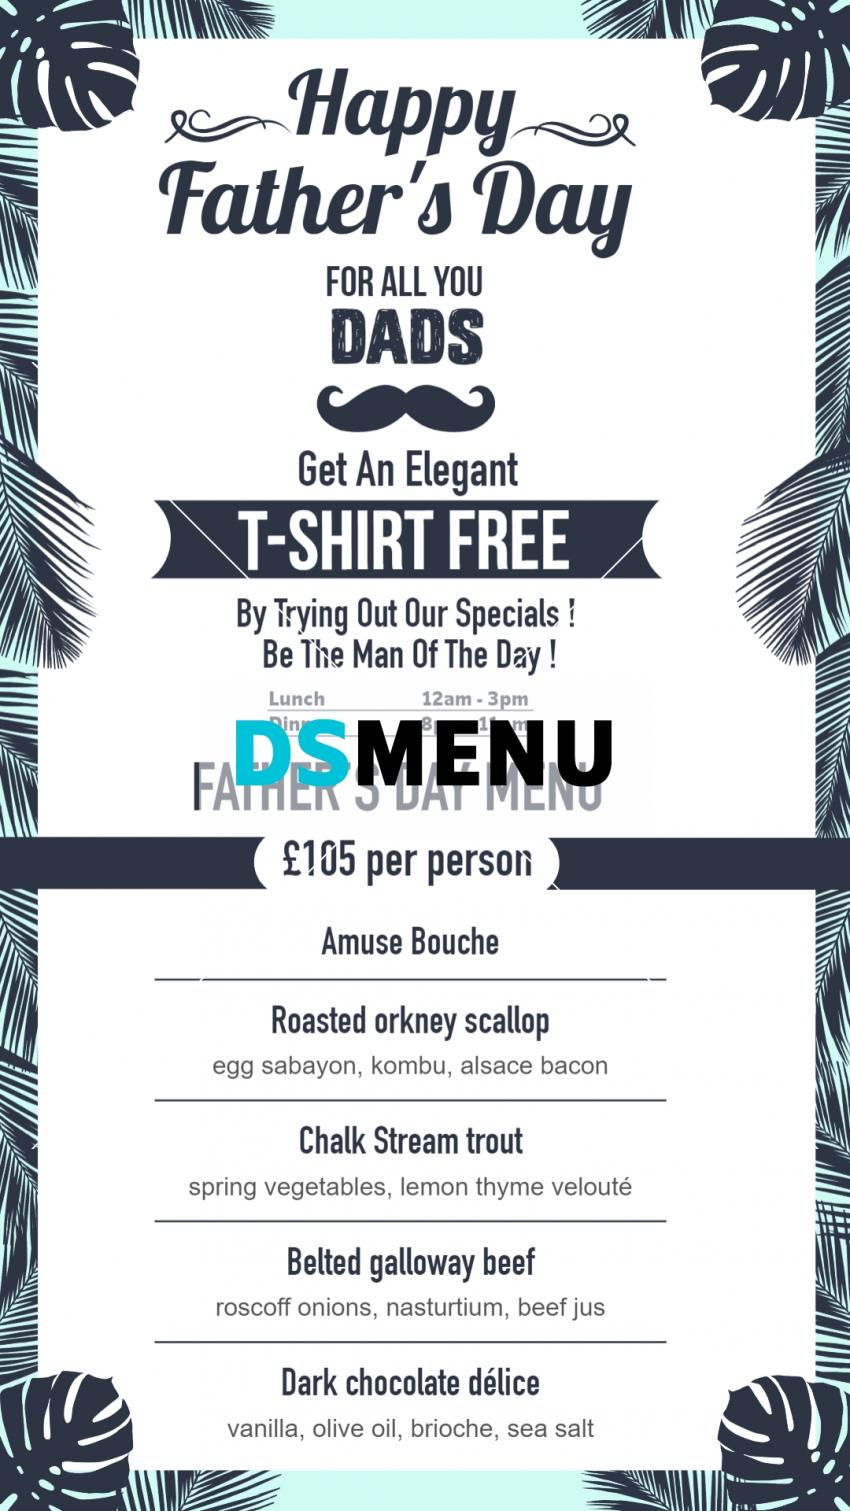 Best Father's day special Vertical Menu for digital signage